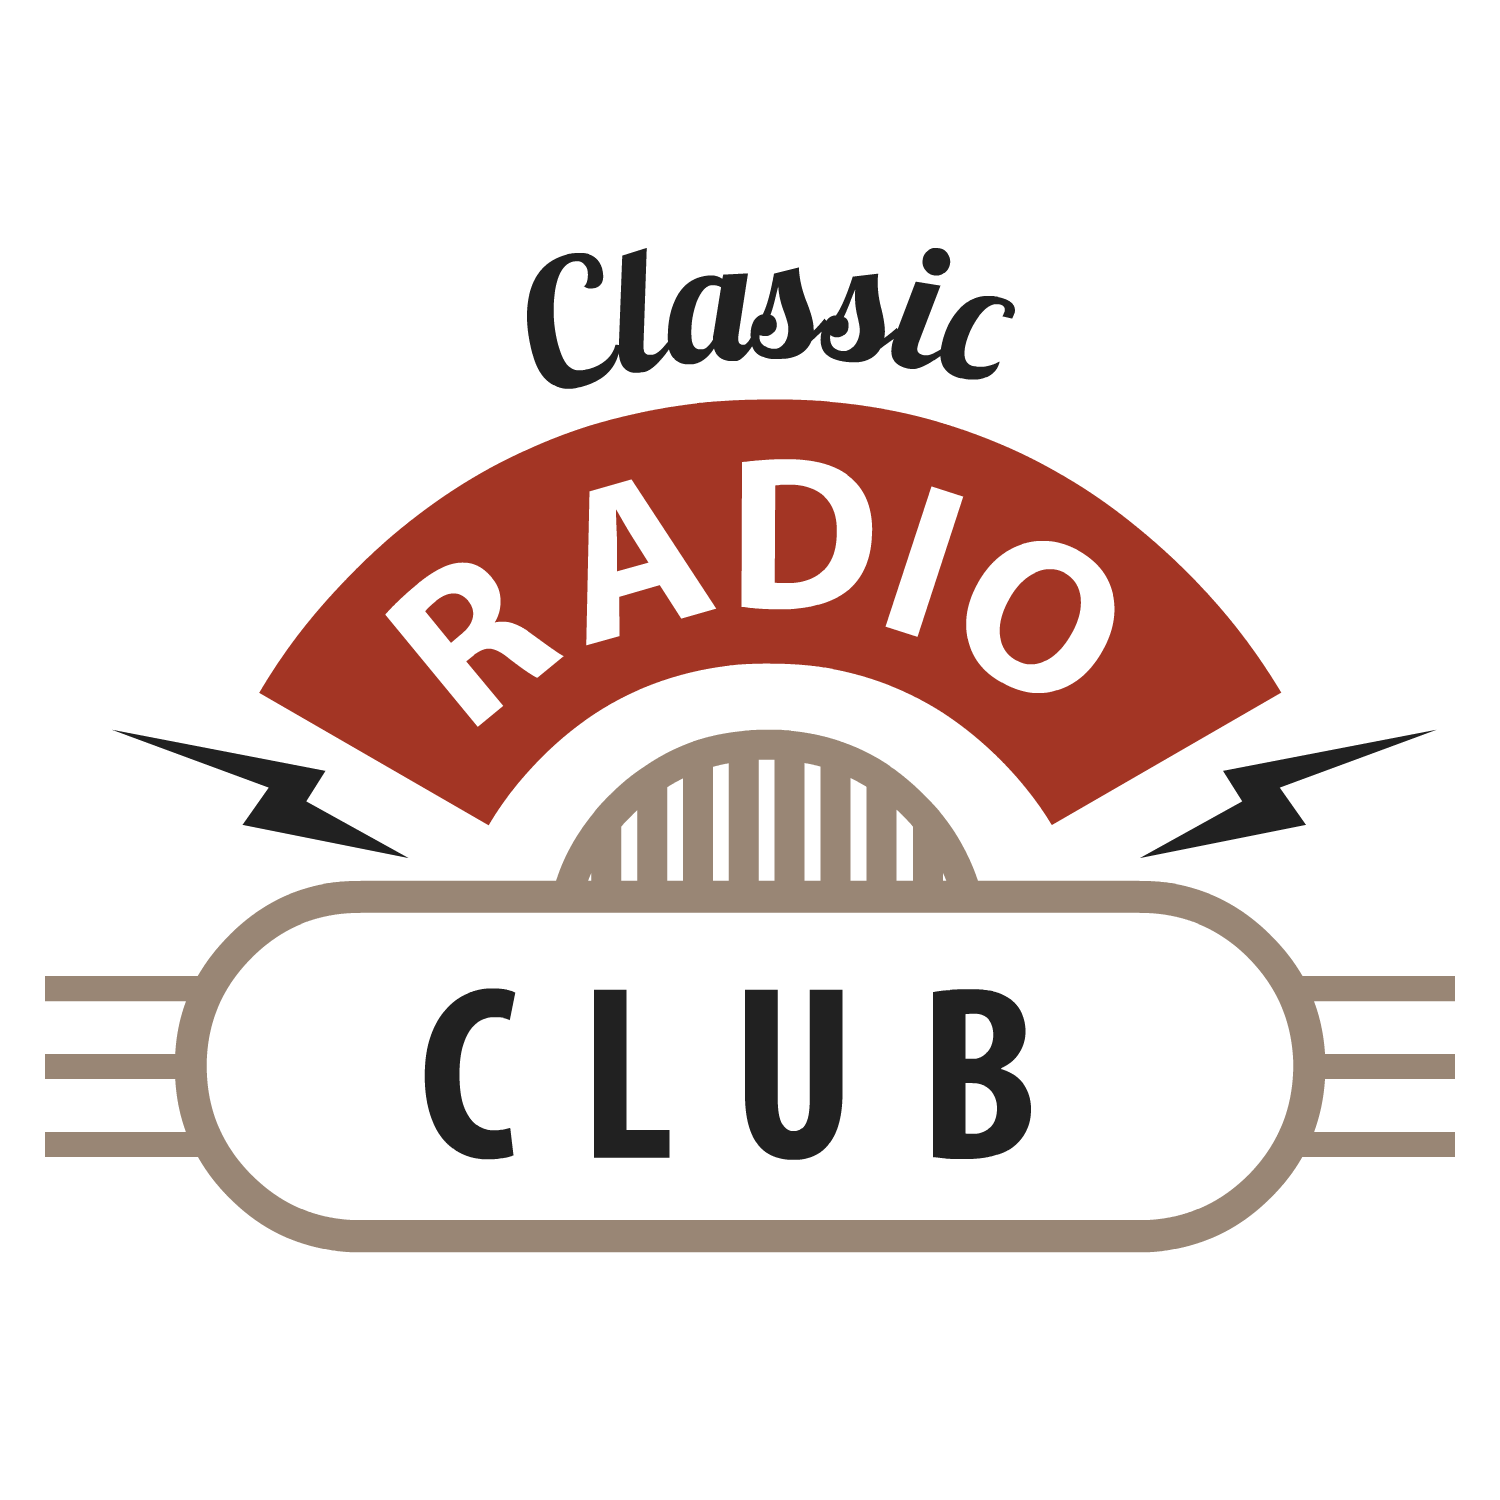 Join the Classic Radio Club today and receive 10 classic radio shows on 5 CDs housed in a full-color collector case each month!